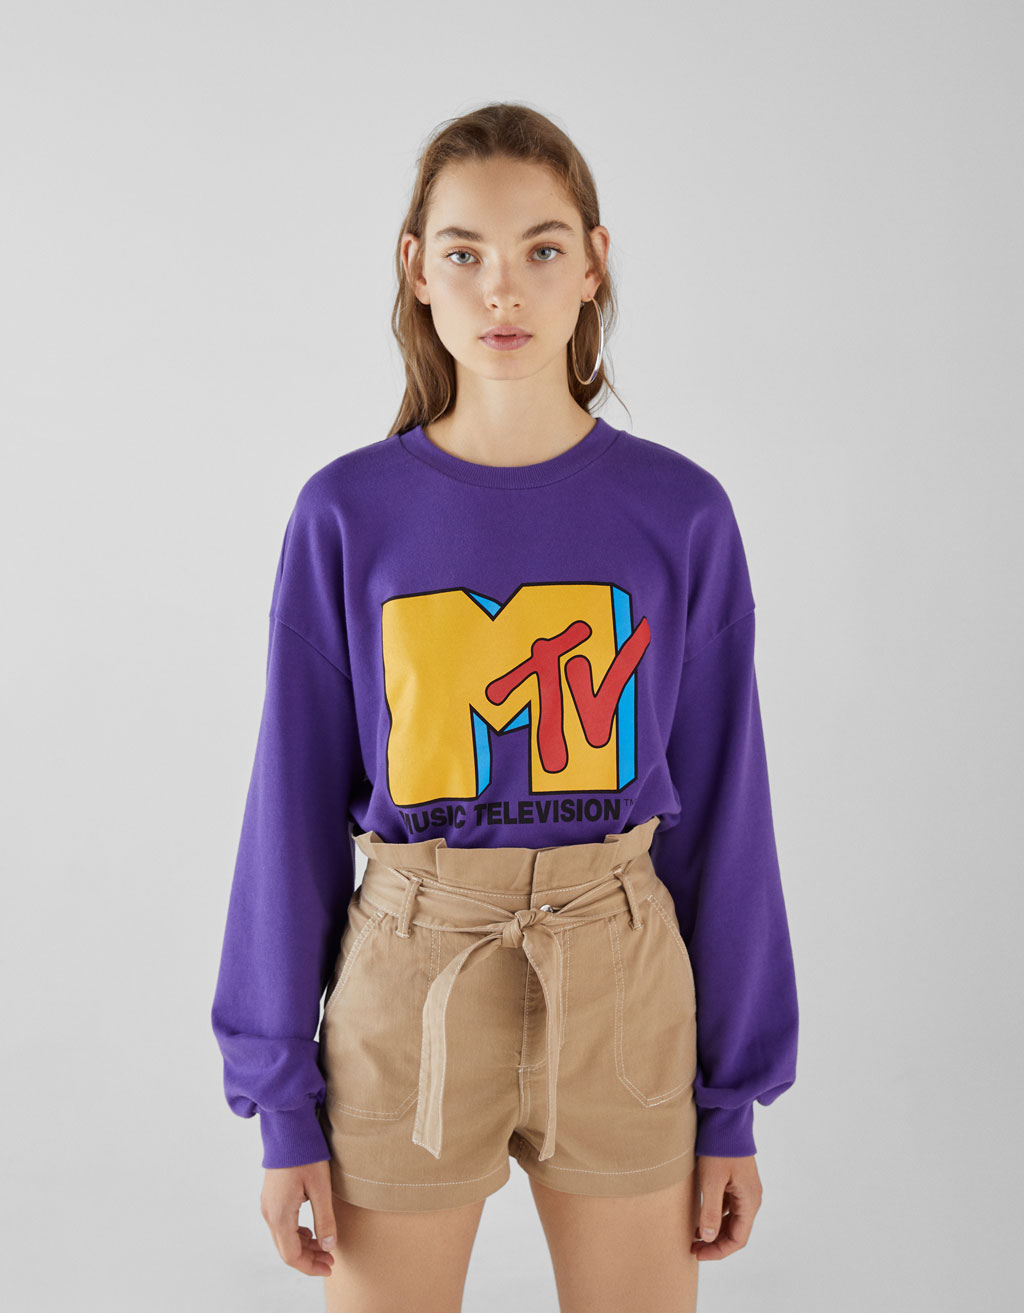 MTV Music Television sweatshirt